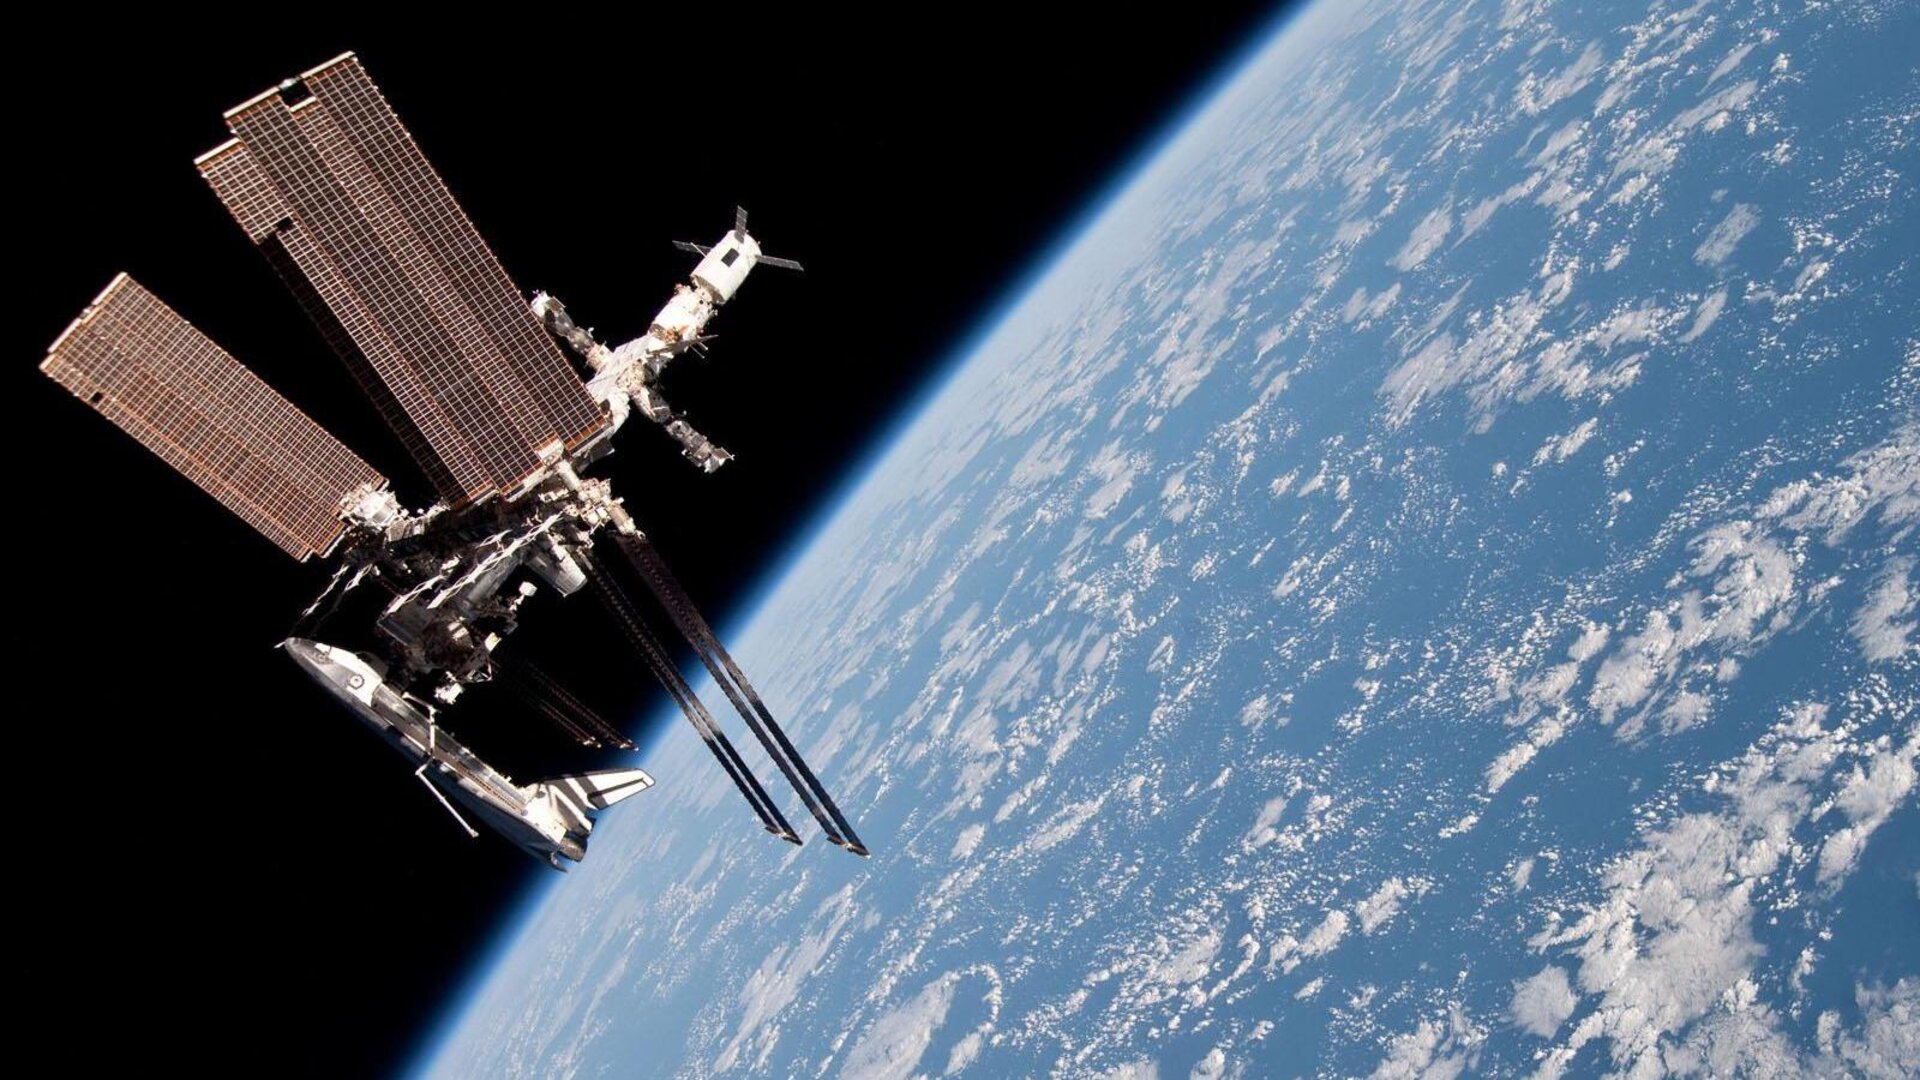 International Space Station with docked ATV, Soyuz and Space Shuttle